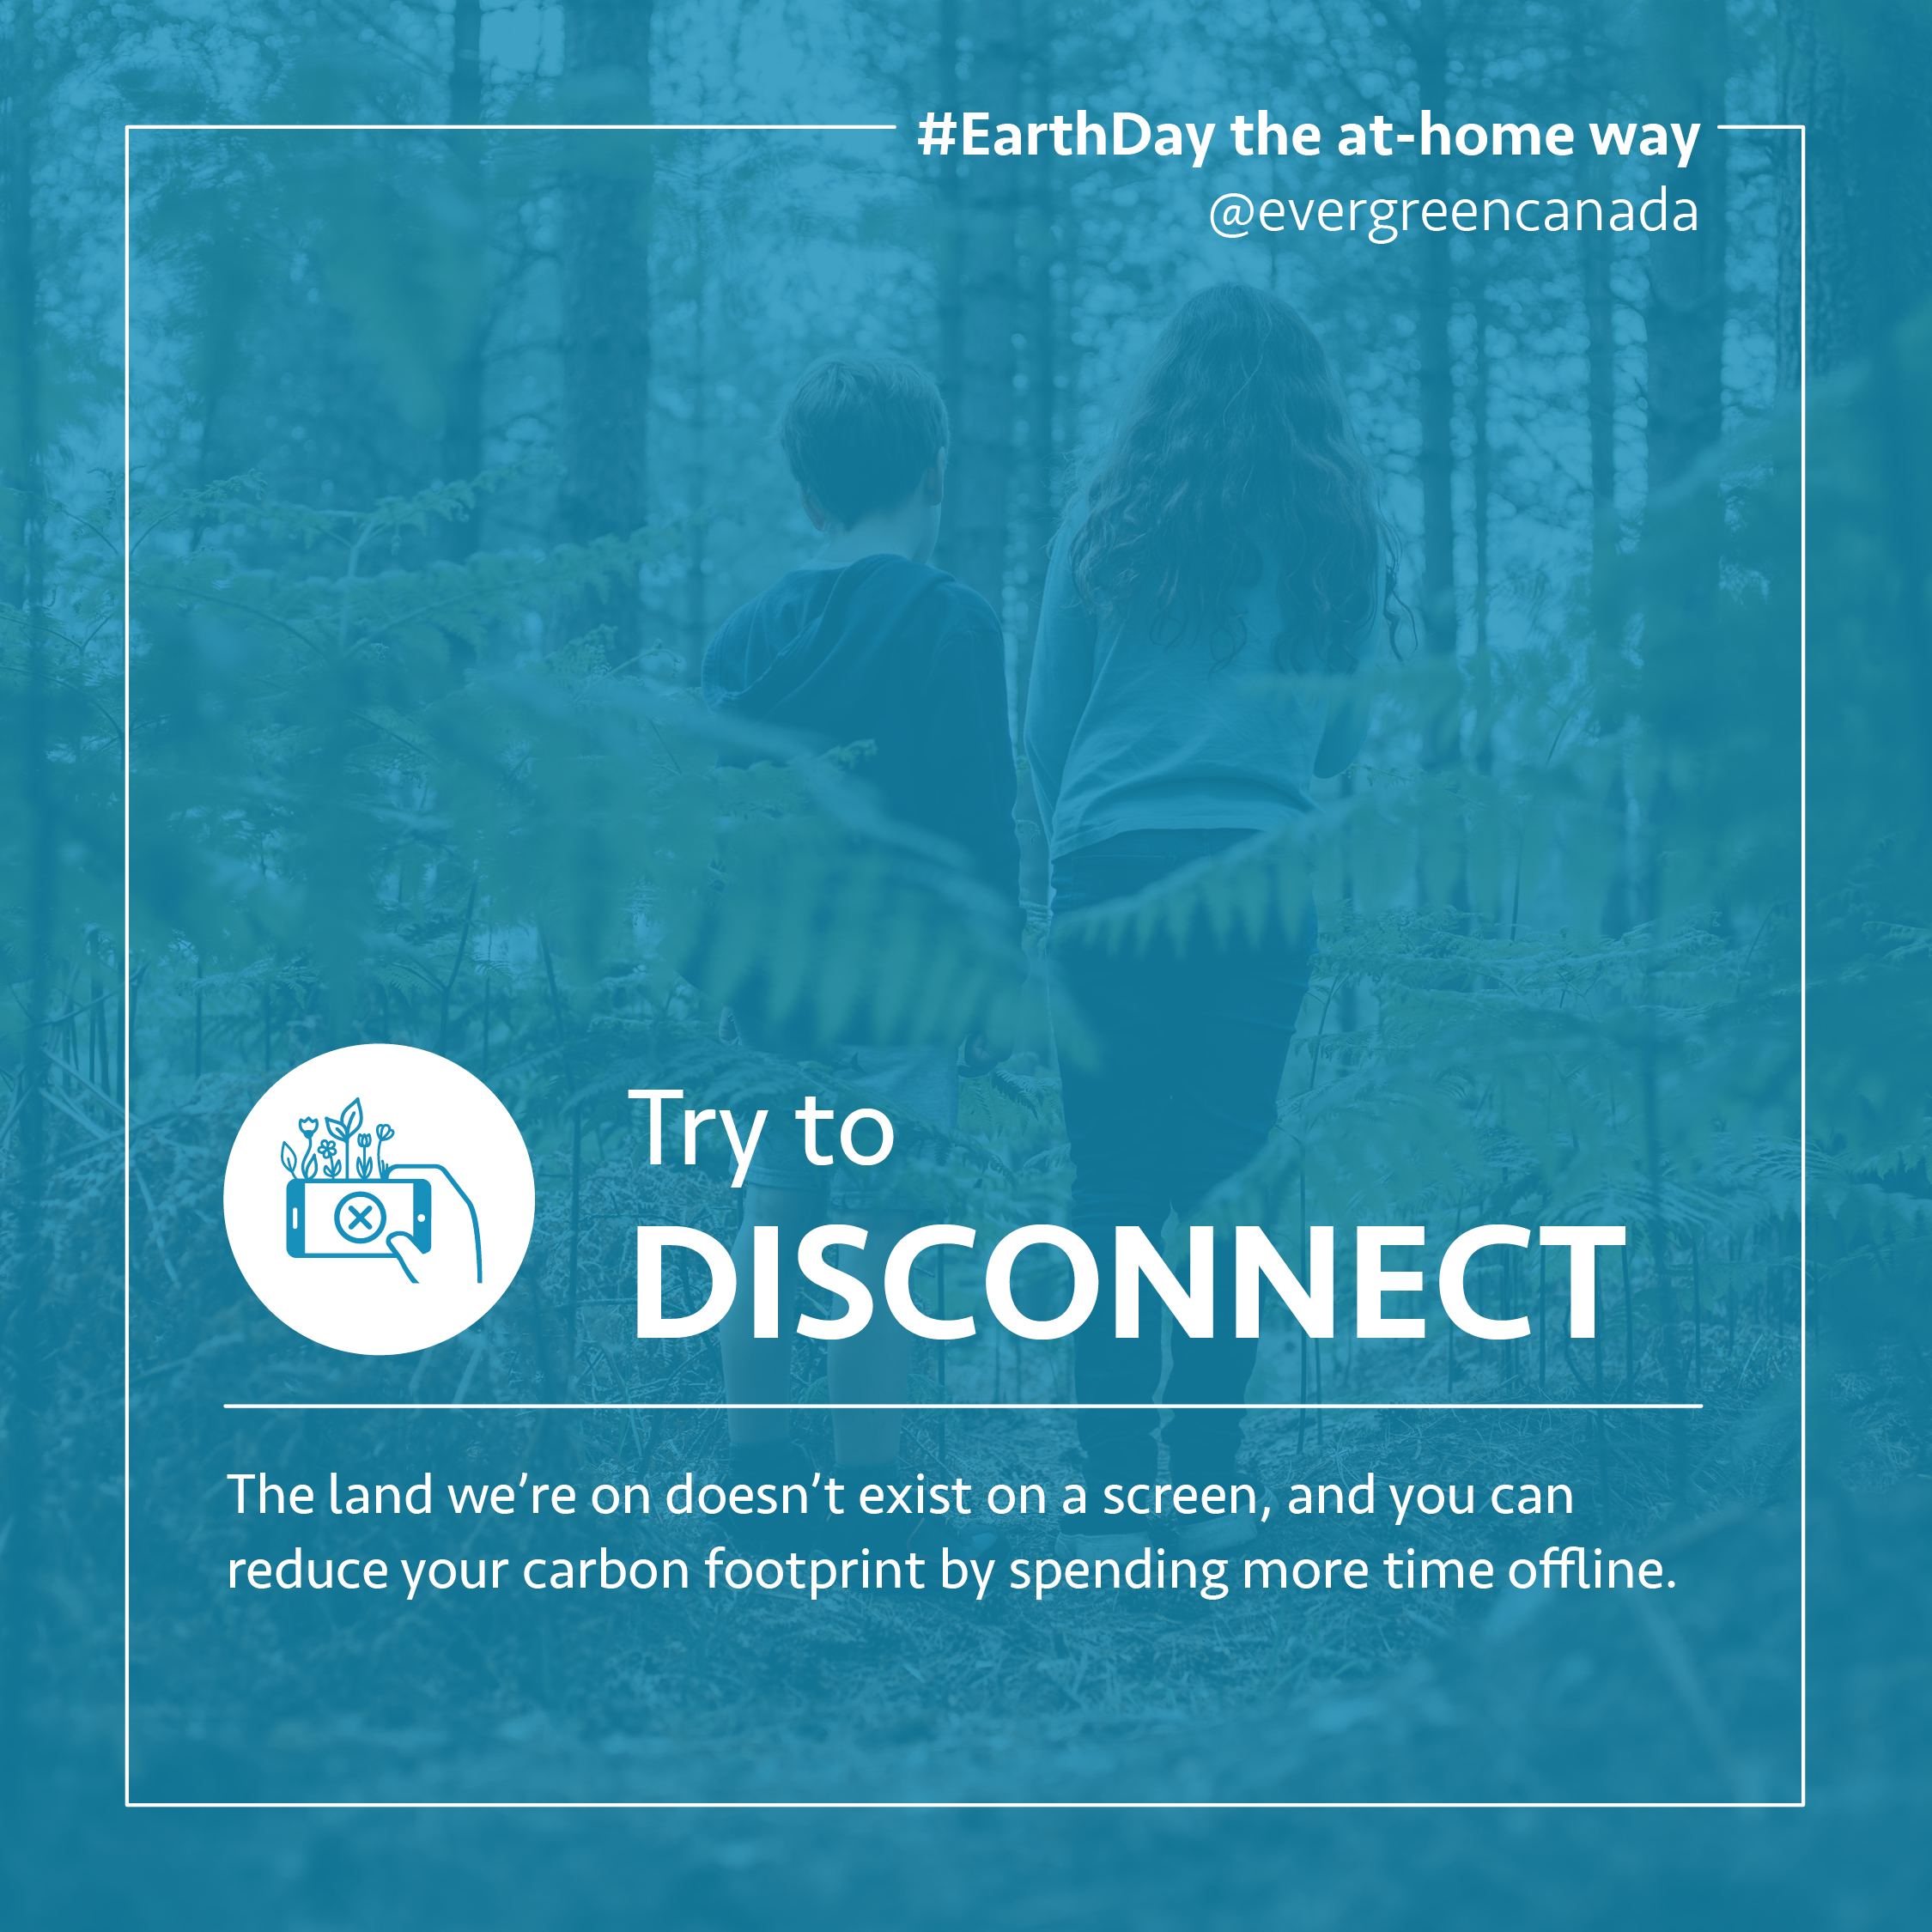 Try to disconnect. The land we're on doesn't exist on a screen, and you can reduce your carbon footprint by spending more time offline.